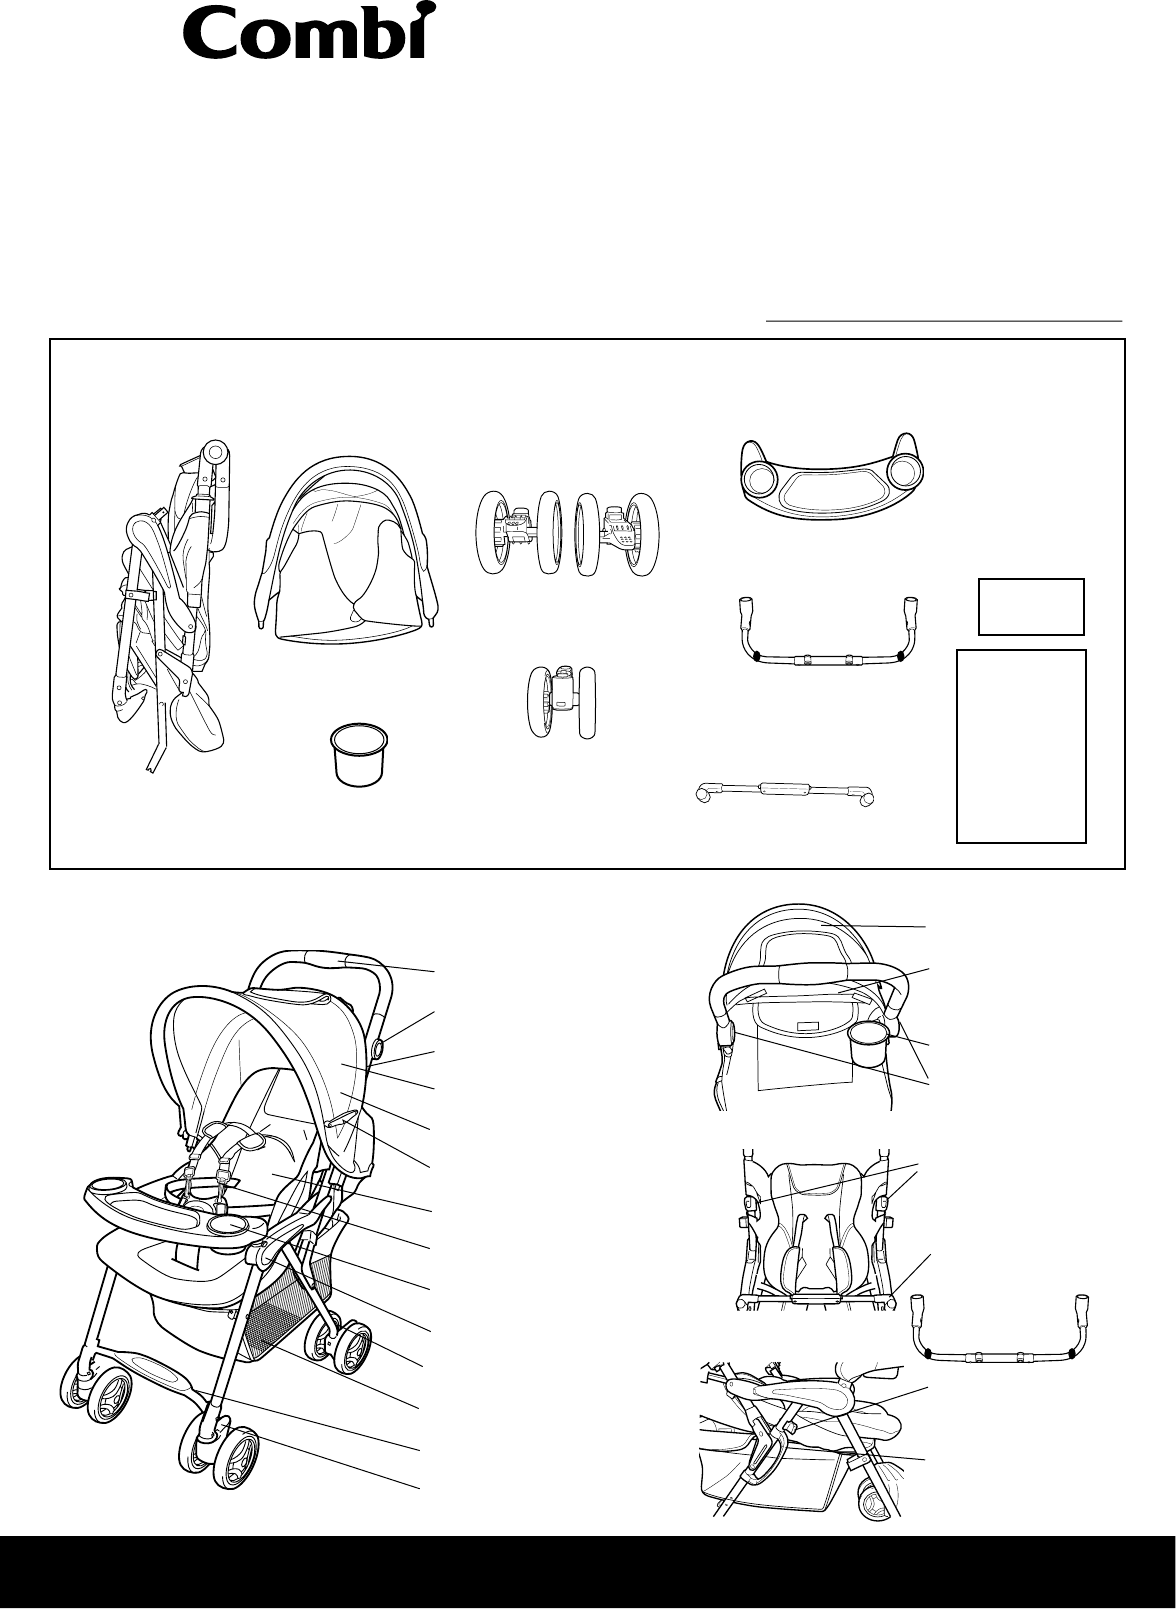 Combi Stroller 4010 User Guide | ManualsOnline.com